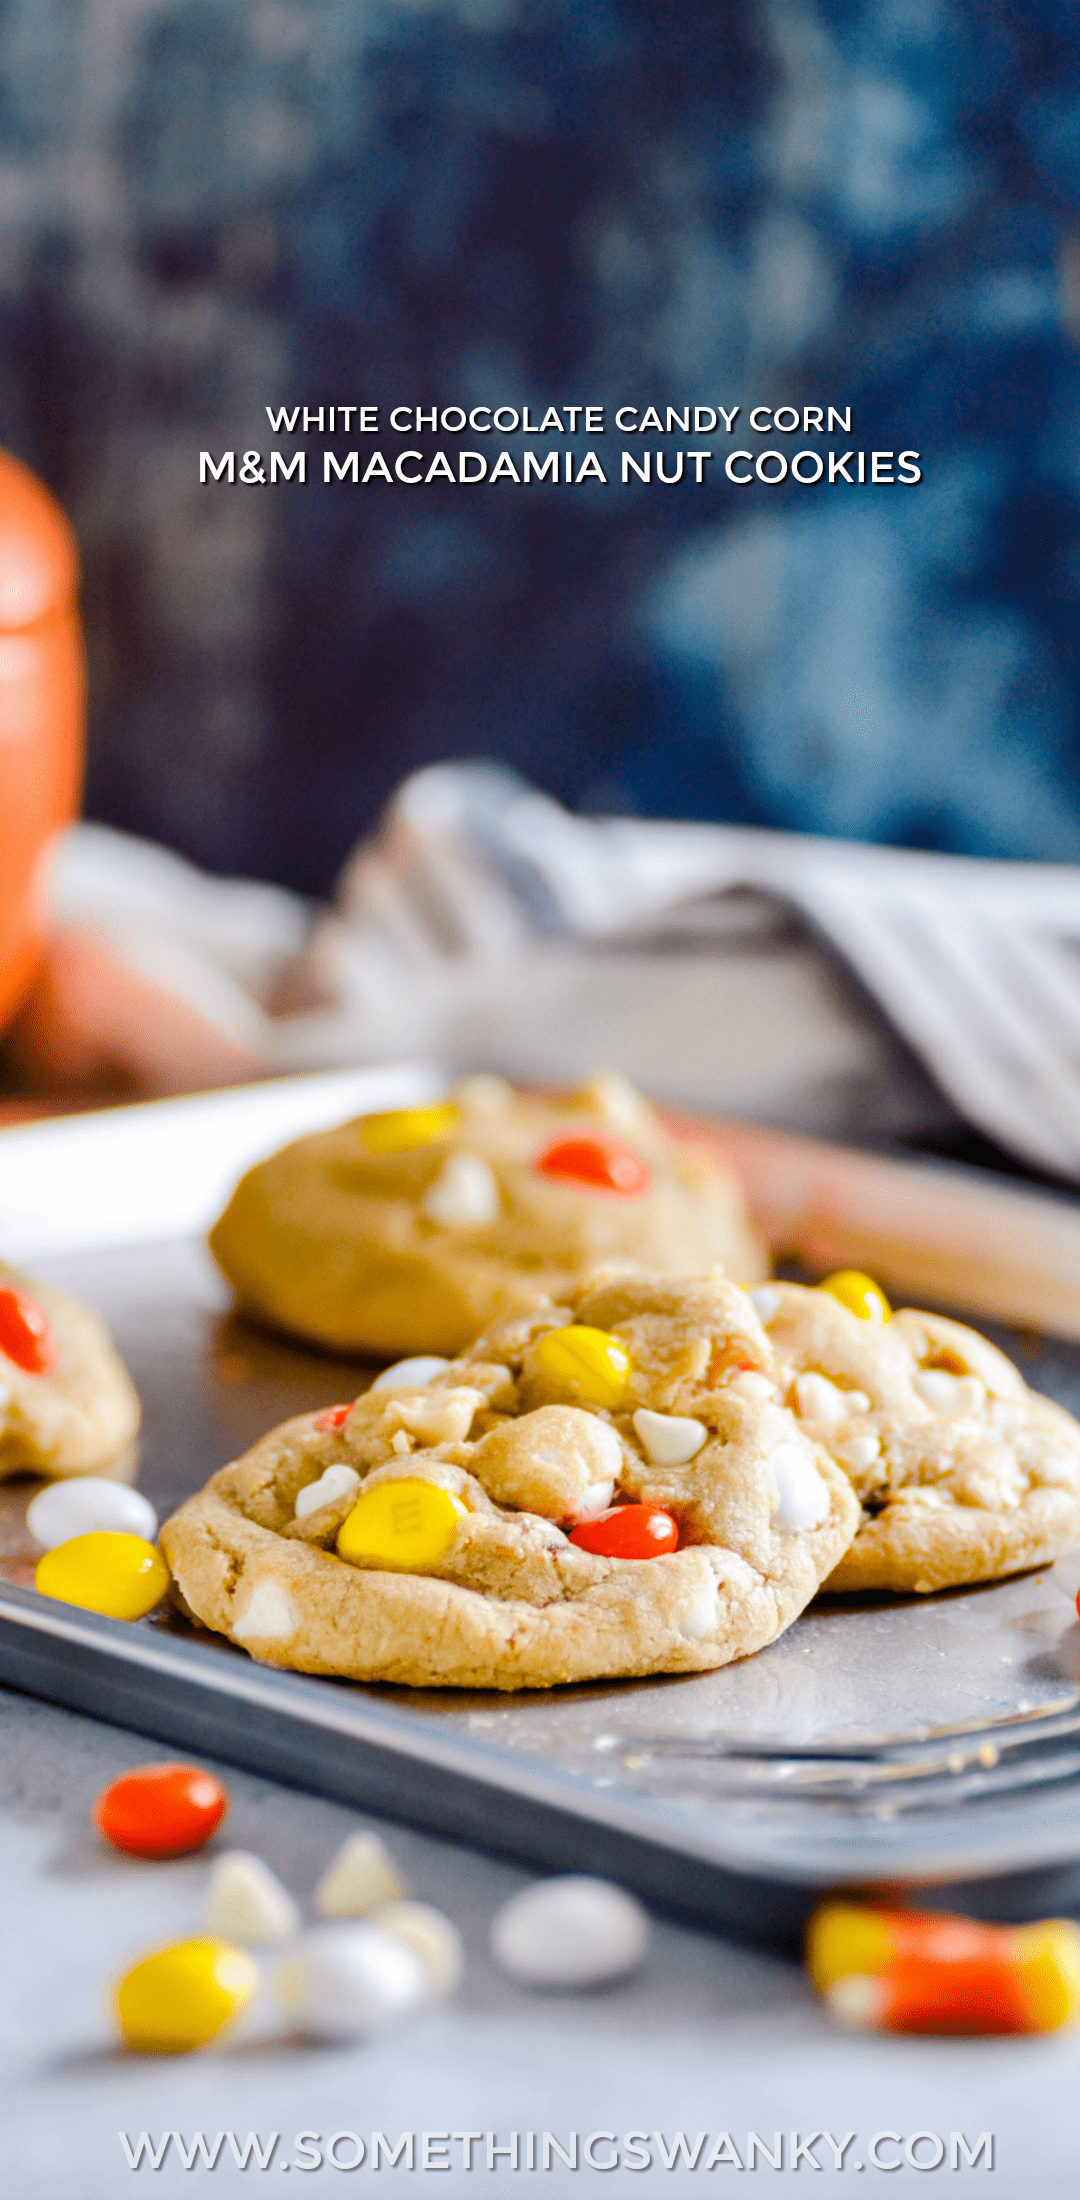 If you like white chocolate macadamia nut cookies, you'll fall in LOVE with these Candy Corn M&M Macadamia Nut Cookies.